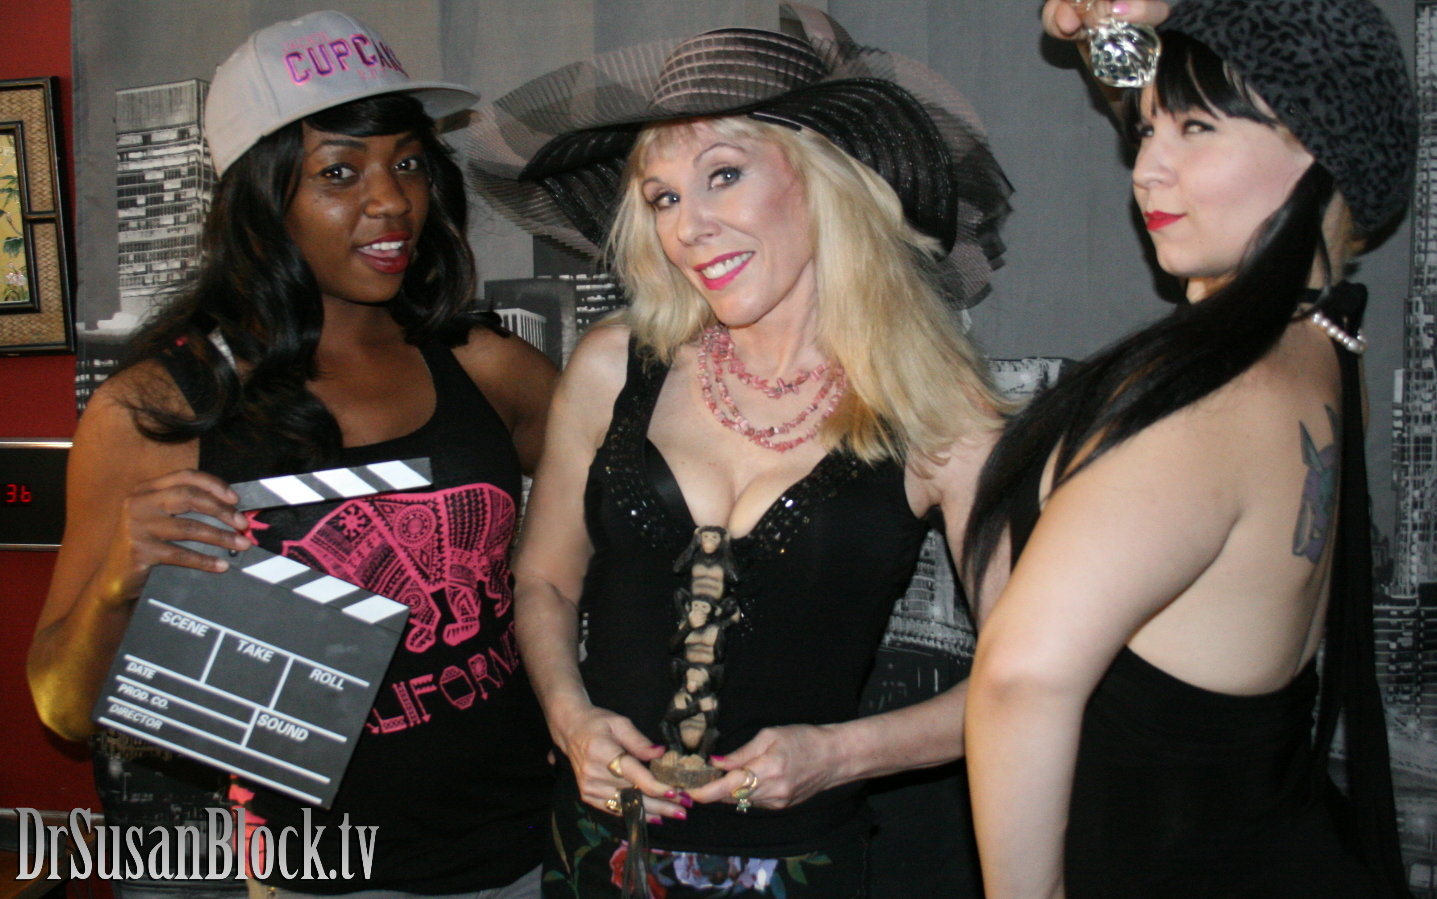 Trixie Plenty, Dr. Suzy and Pandora.  Photo: L'erotique